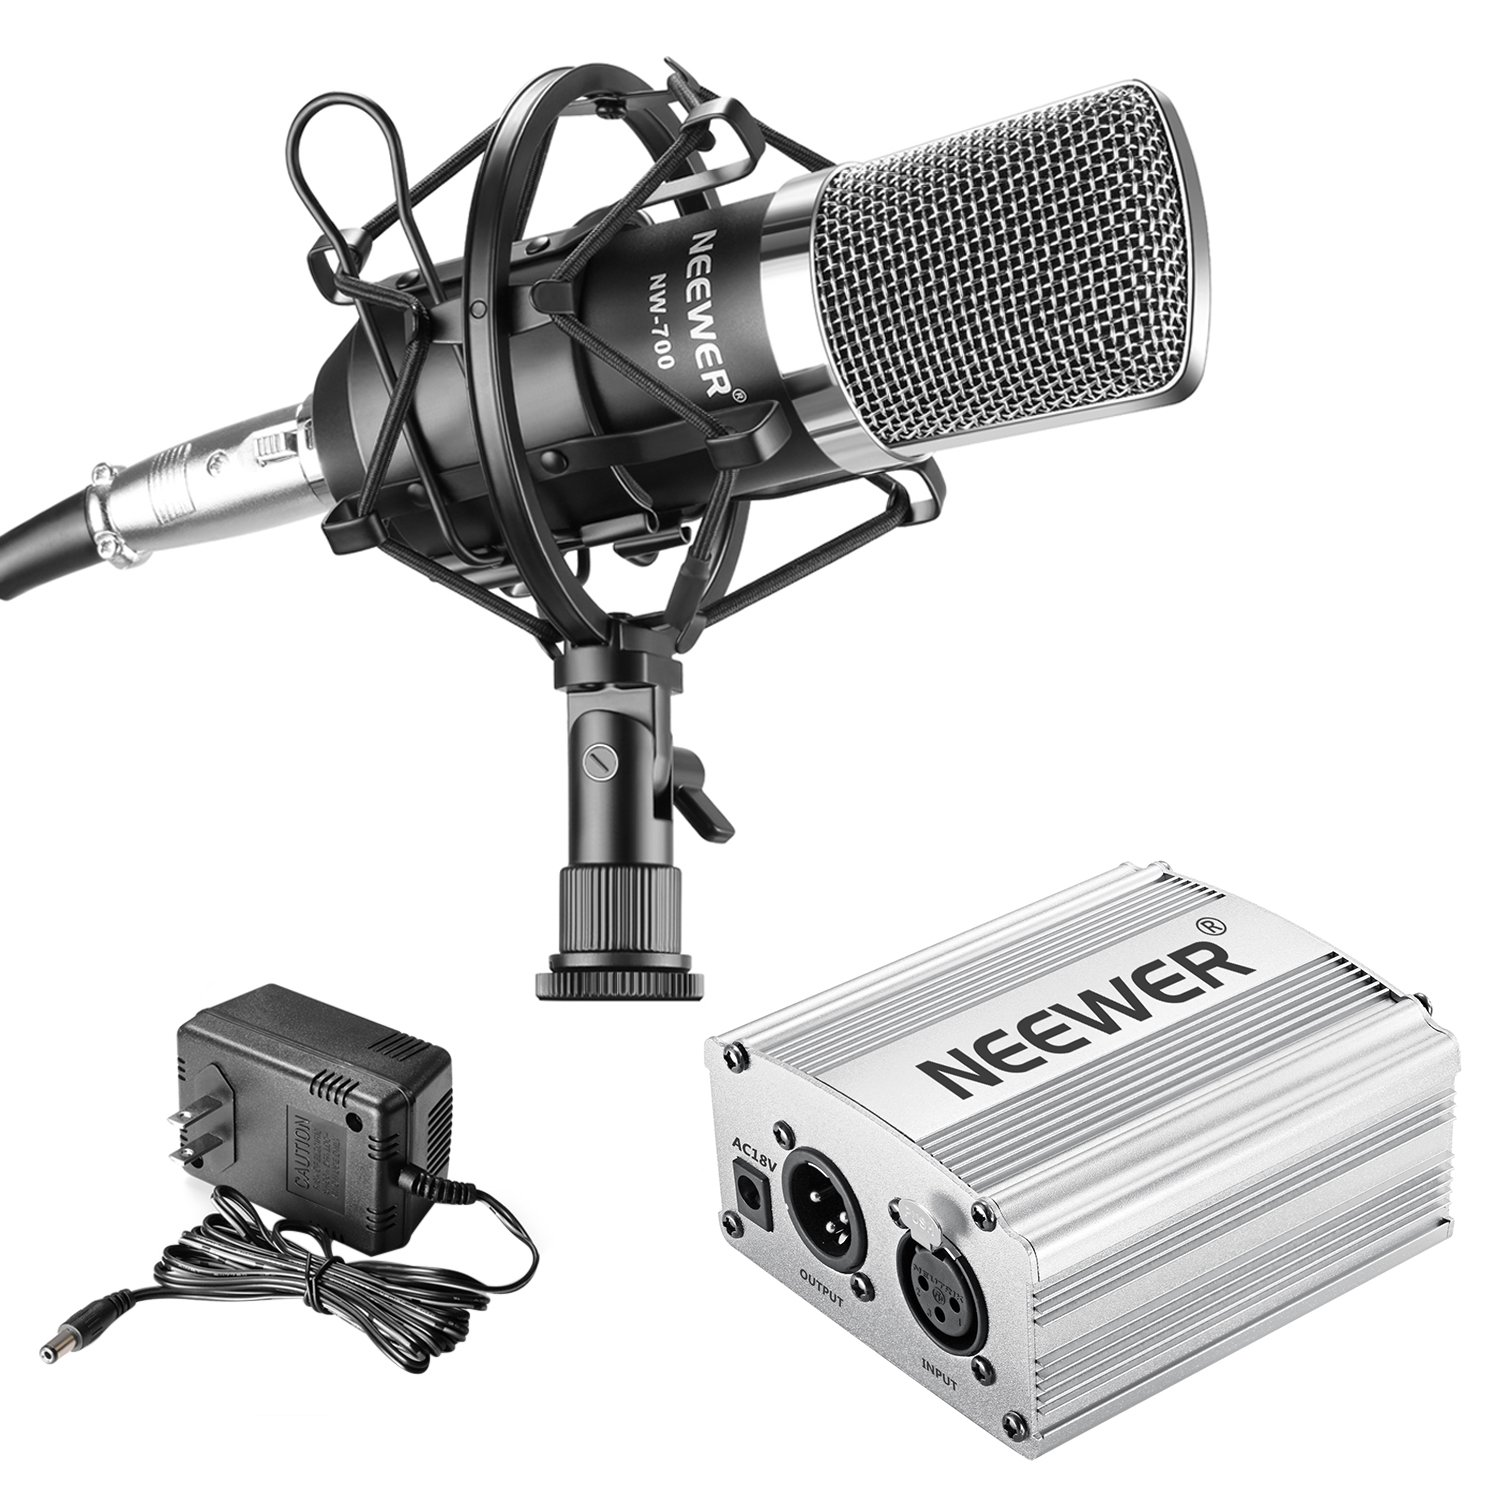 Neewer NW-700 Professional Condenser Microphone and Phantom Power Kit with Mic Shock Mount,48V Phantom Power Supply(Silver), XLR Audio Cable for Home Studio Sound Recording, Podcasting by Neewer